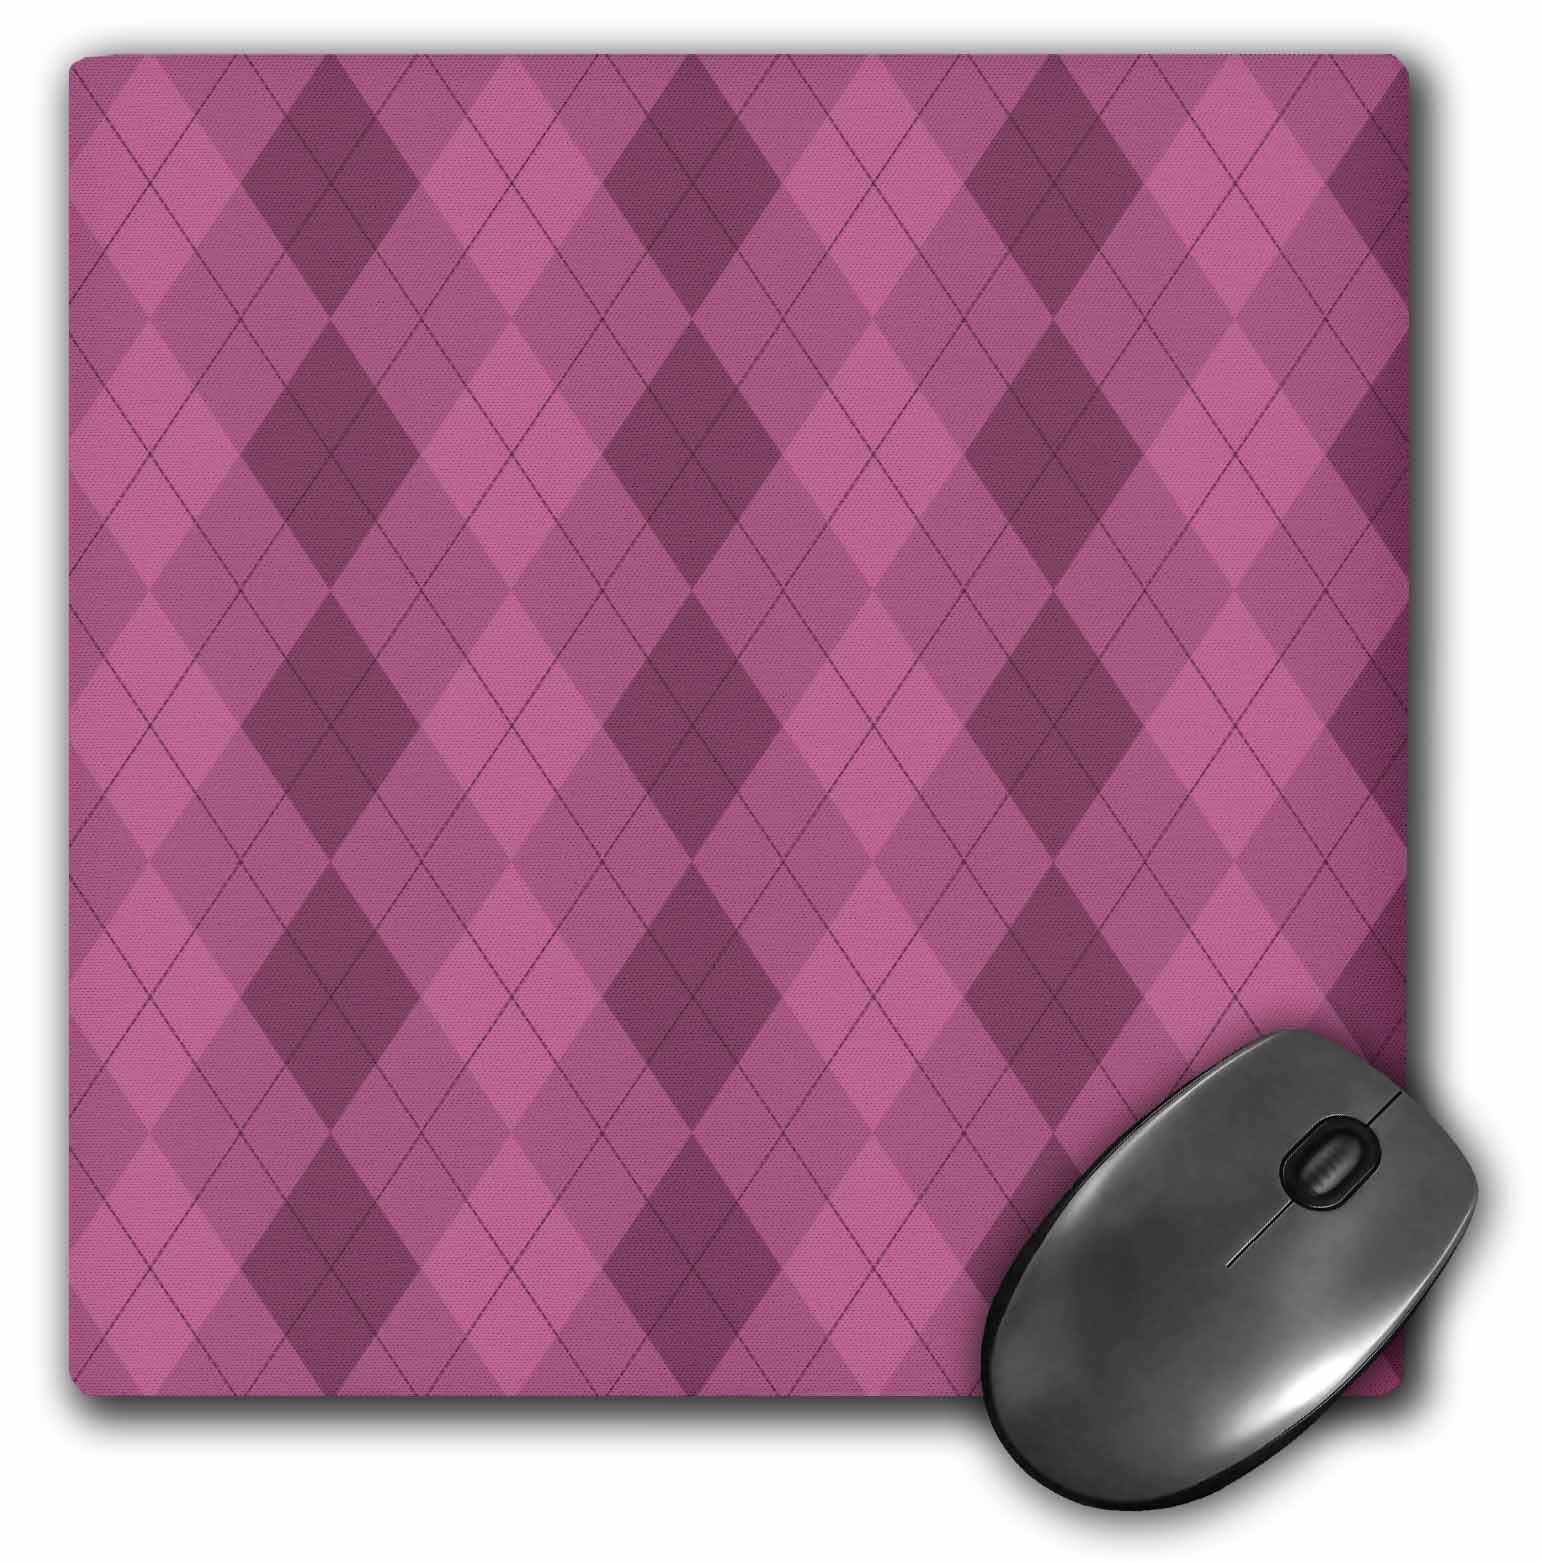 3dRose Triple Pink Argyle Pattern - Fashionable Art, Mouse Pad, 8 by 8 inches